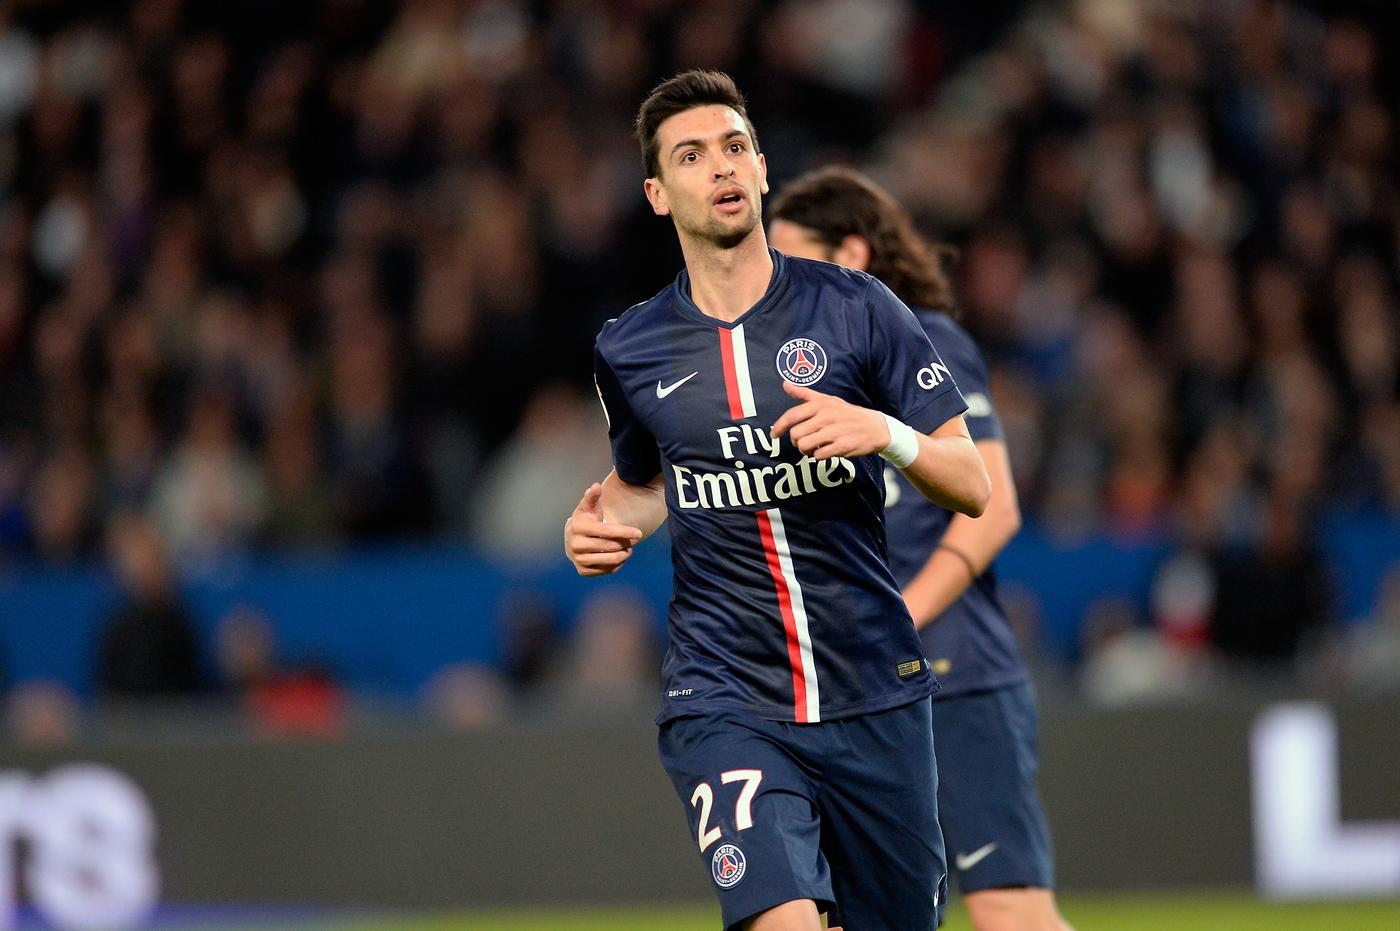 Liverpool 'eyeing cut-price Javier Pastore transfer from Paris Saint-Germain'